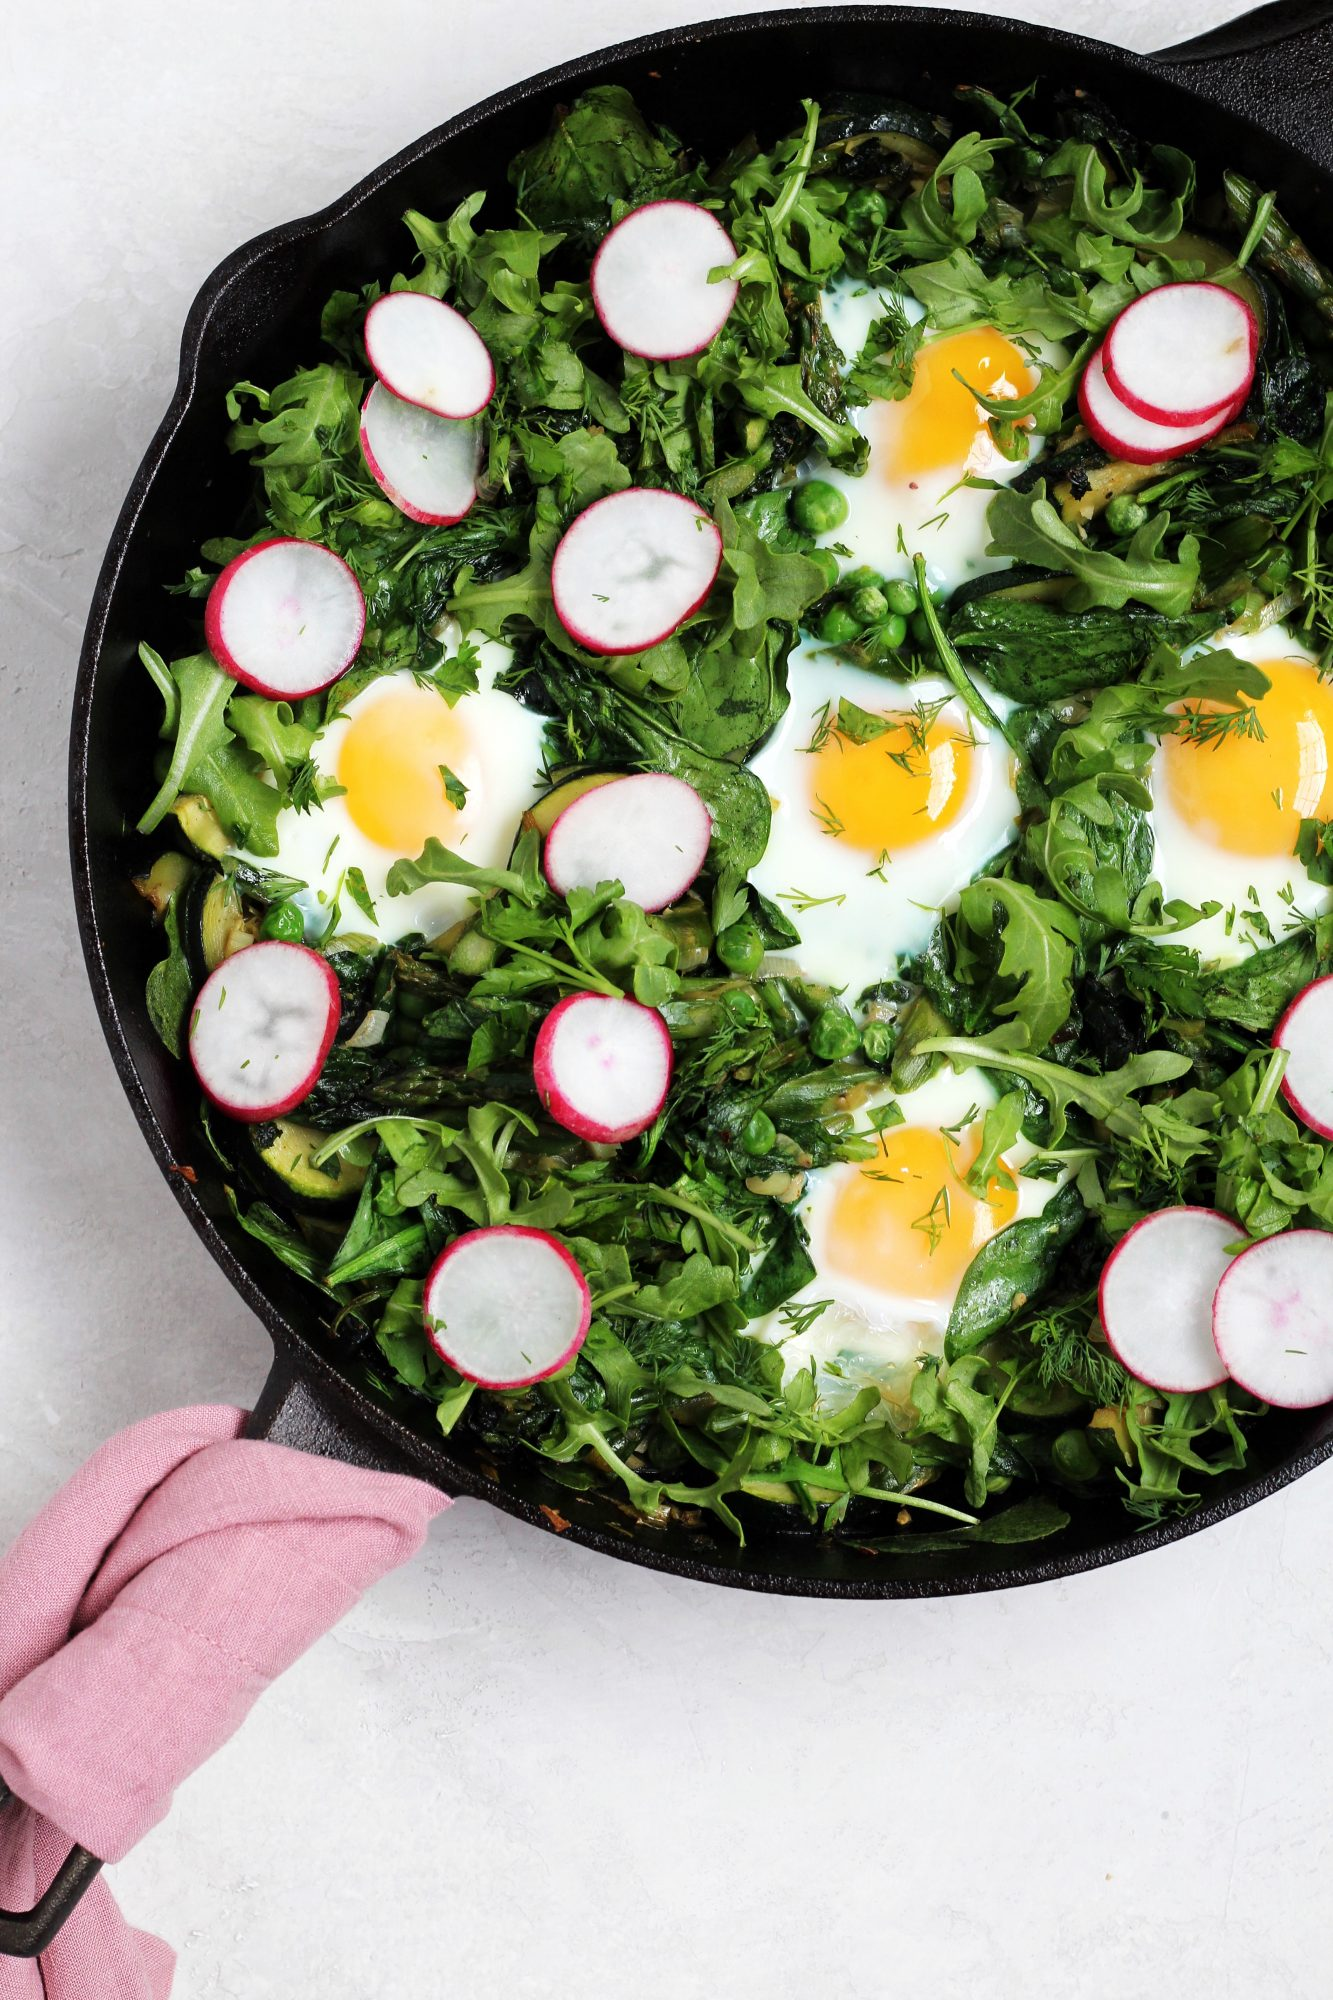 This Spring Shakshuka is bright, fresh, and green!